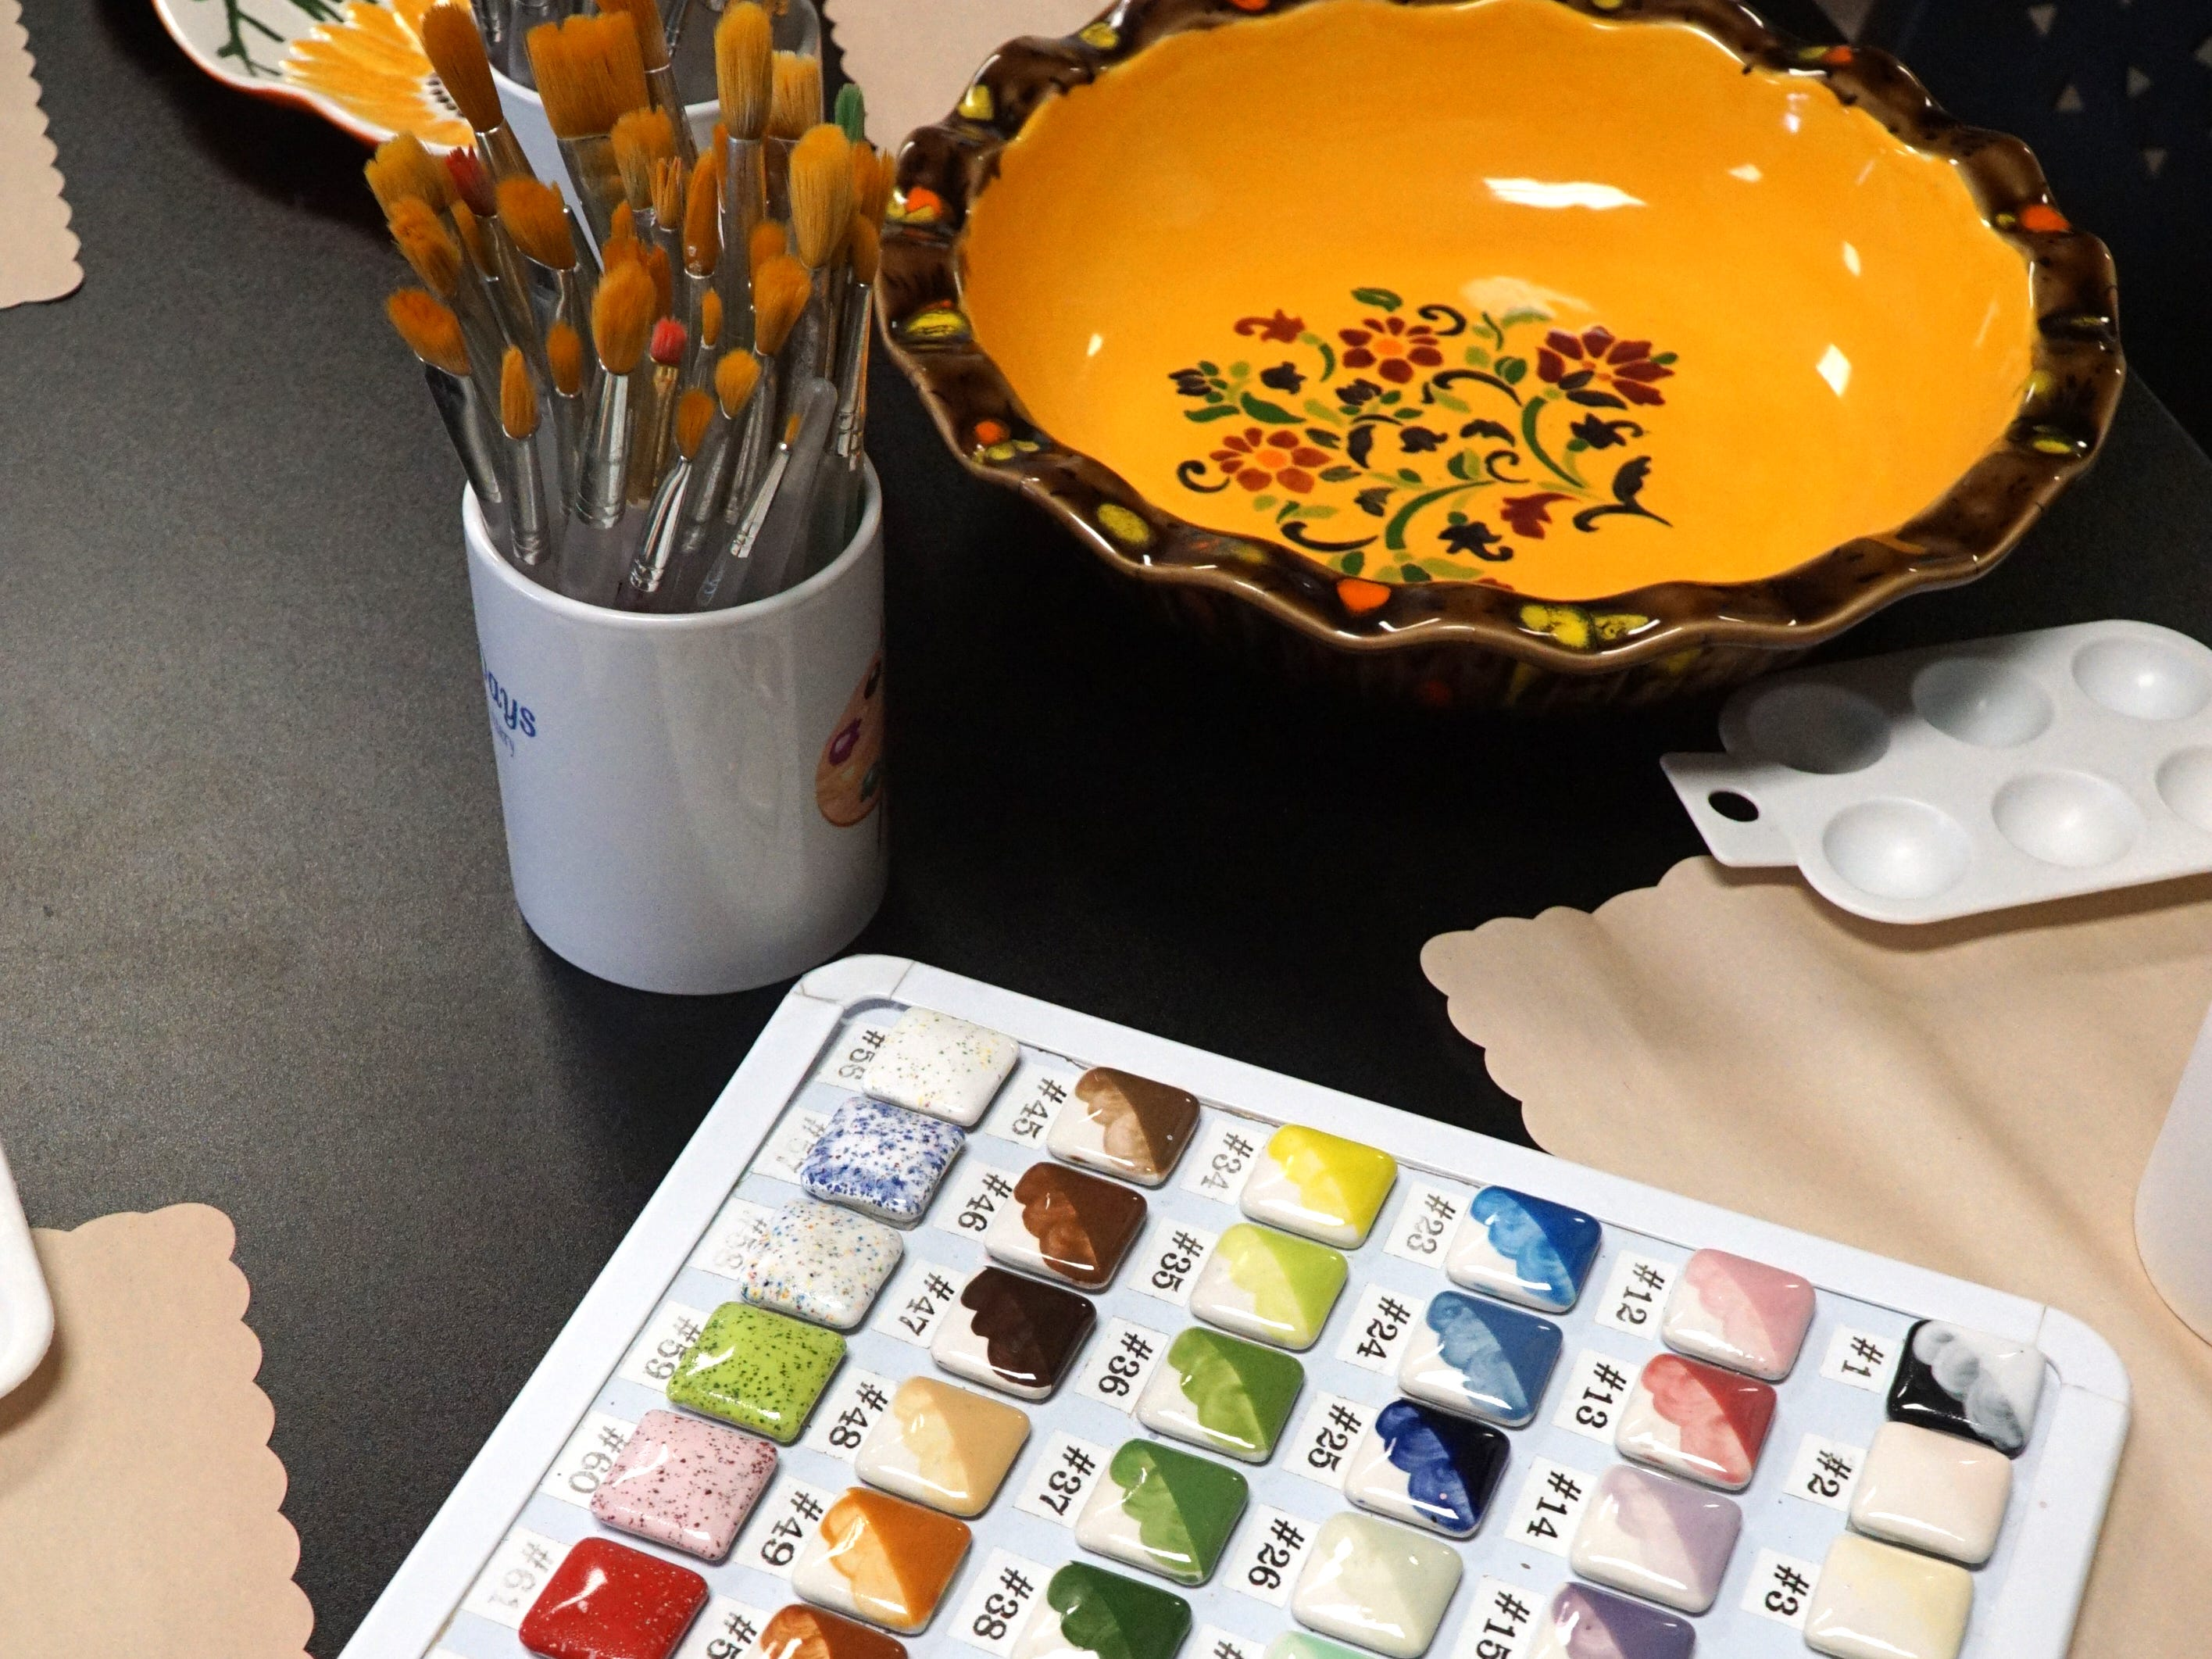 Customers of Glazy Days can grab a pre-made ceramic object, a paint brush and glazing paint to create their works.